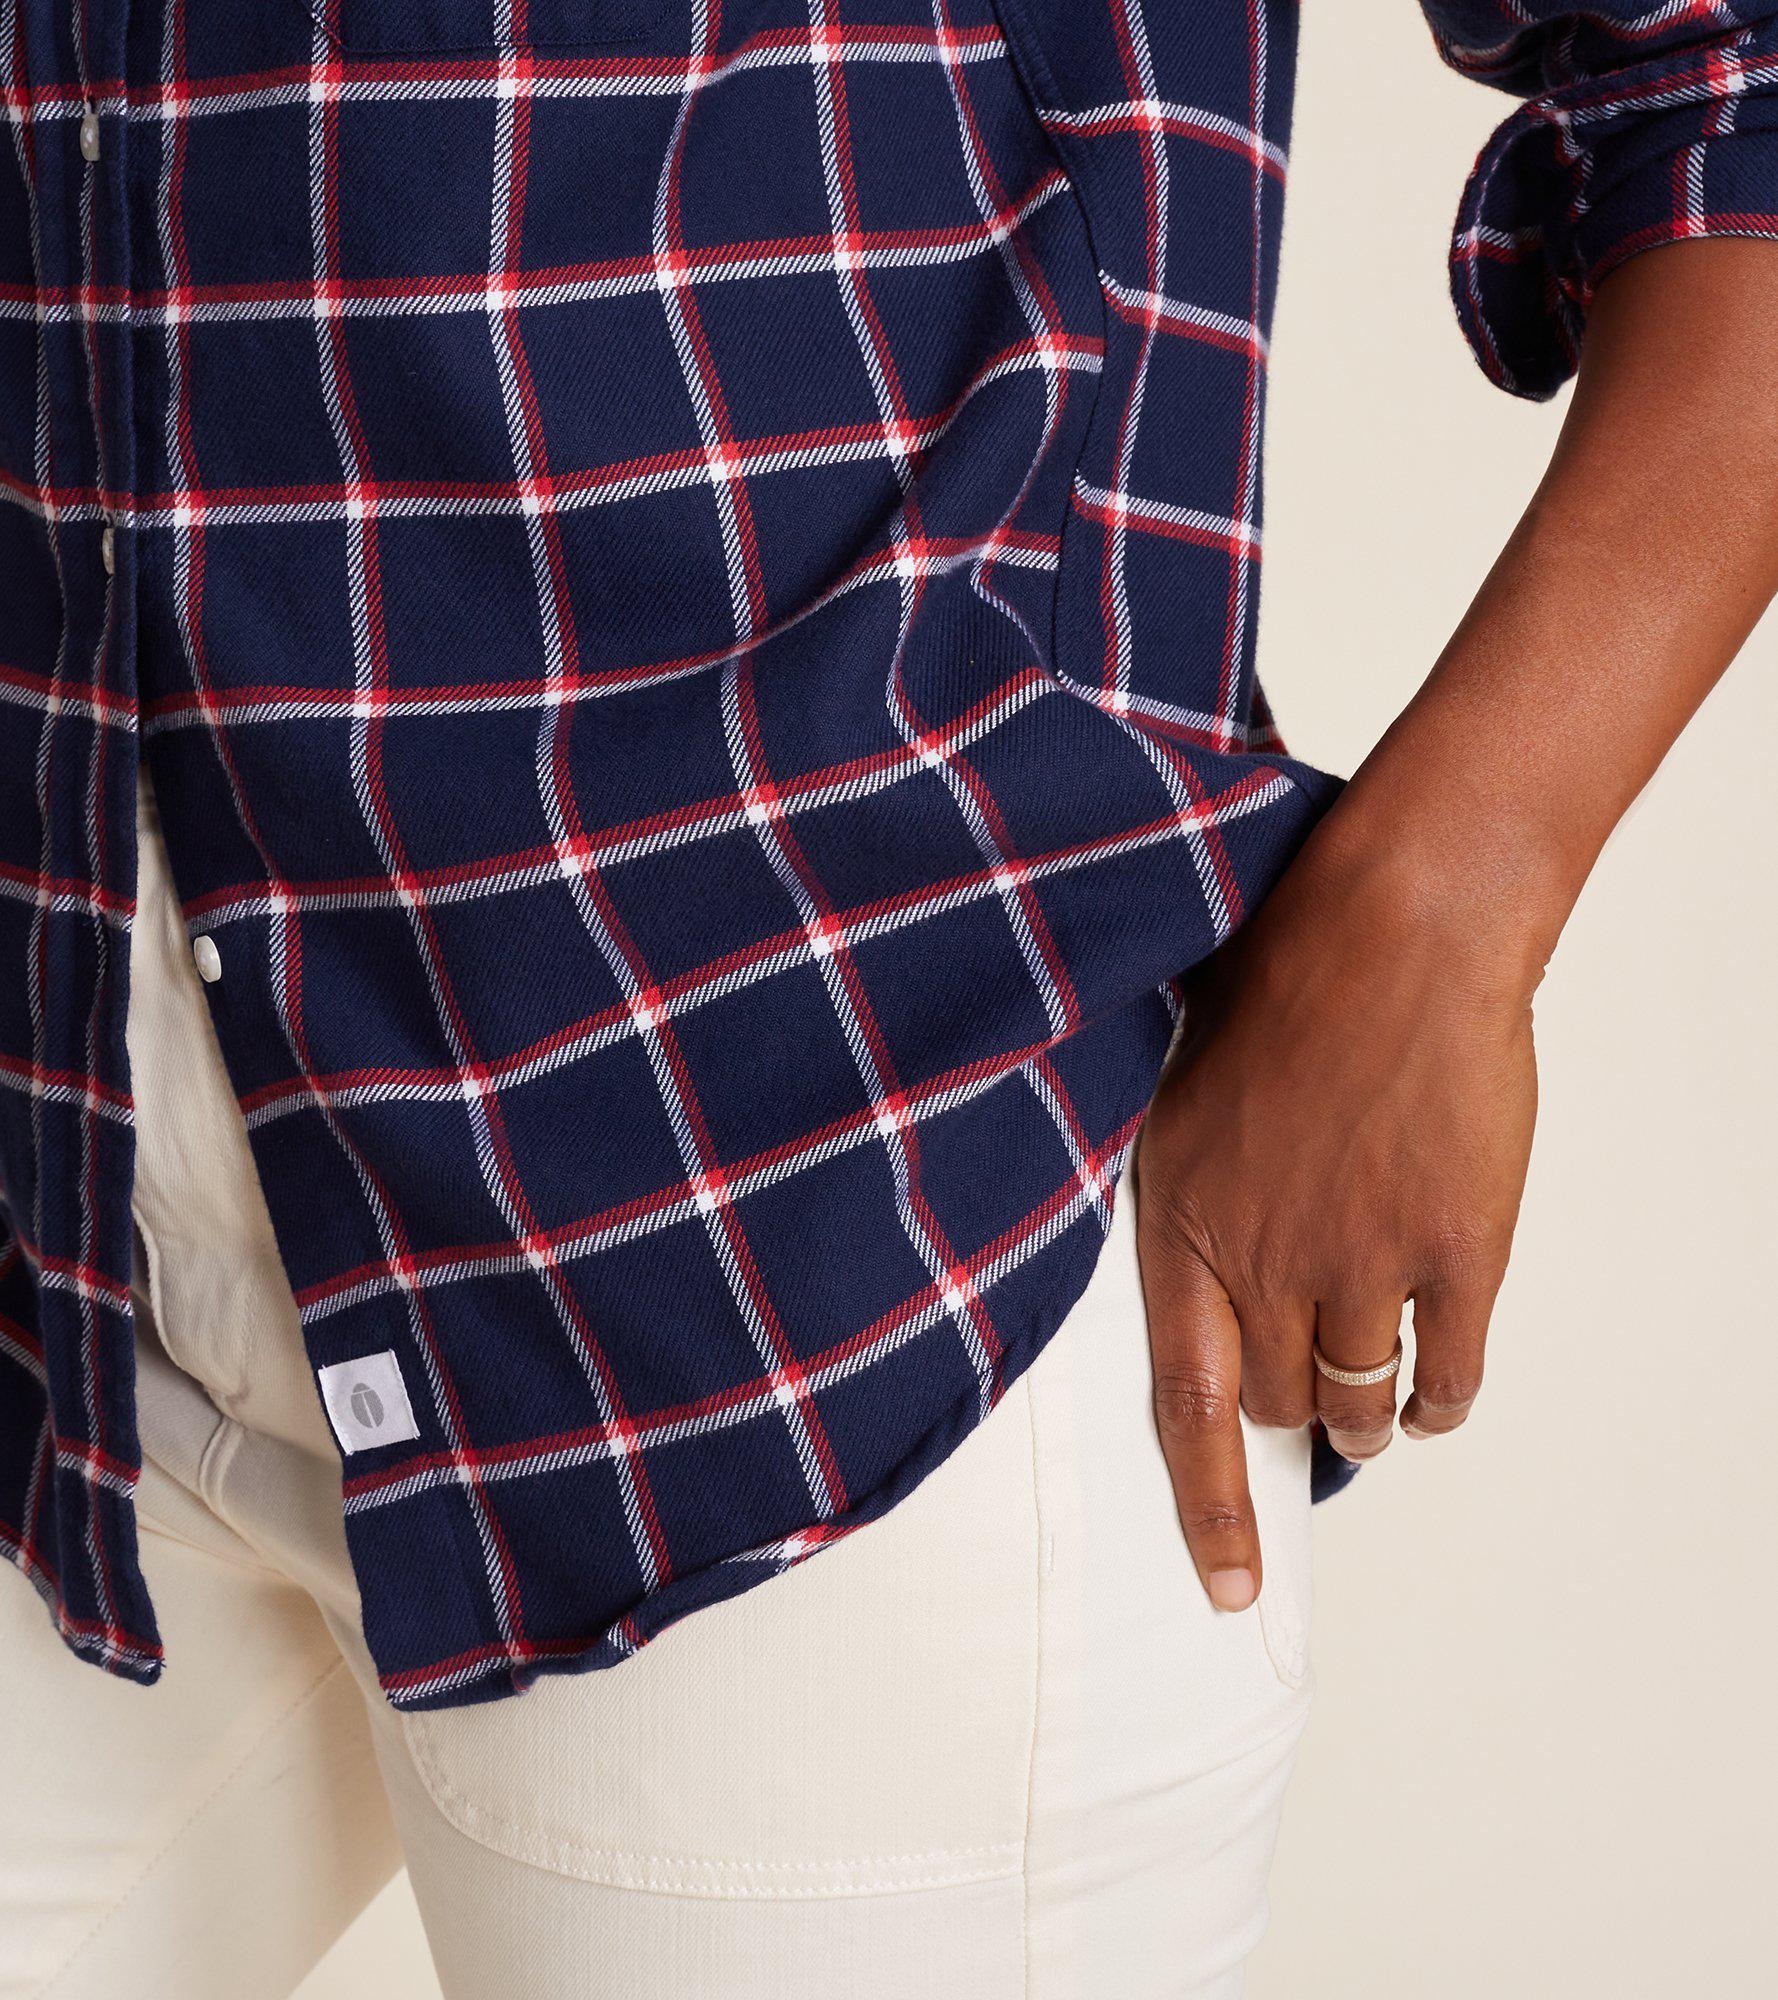 The Hero Navy with Red and White Plaid, Plush Flannel Final Sale 3